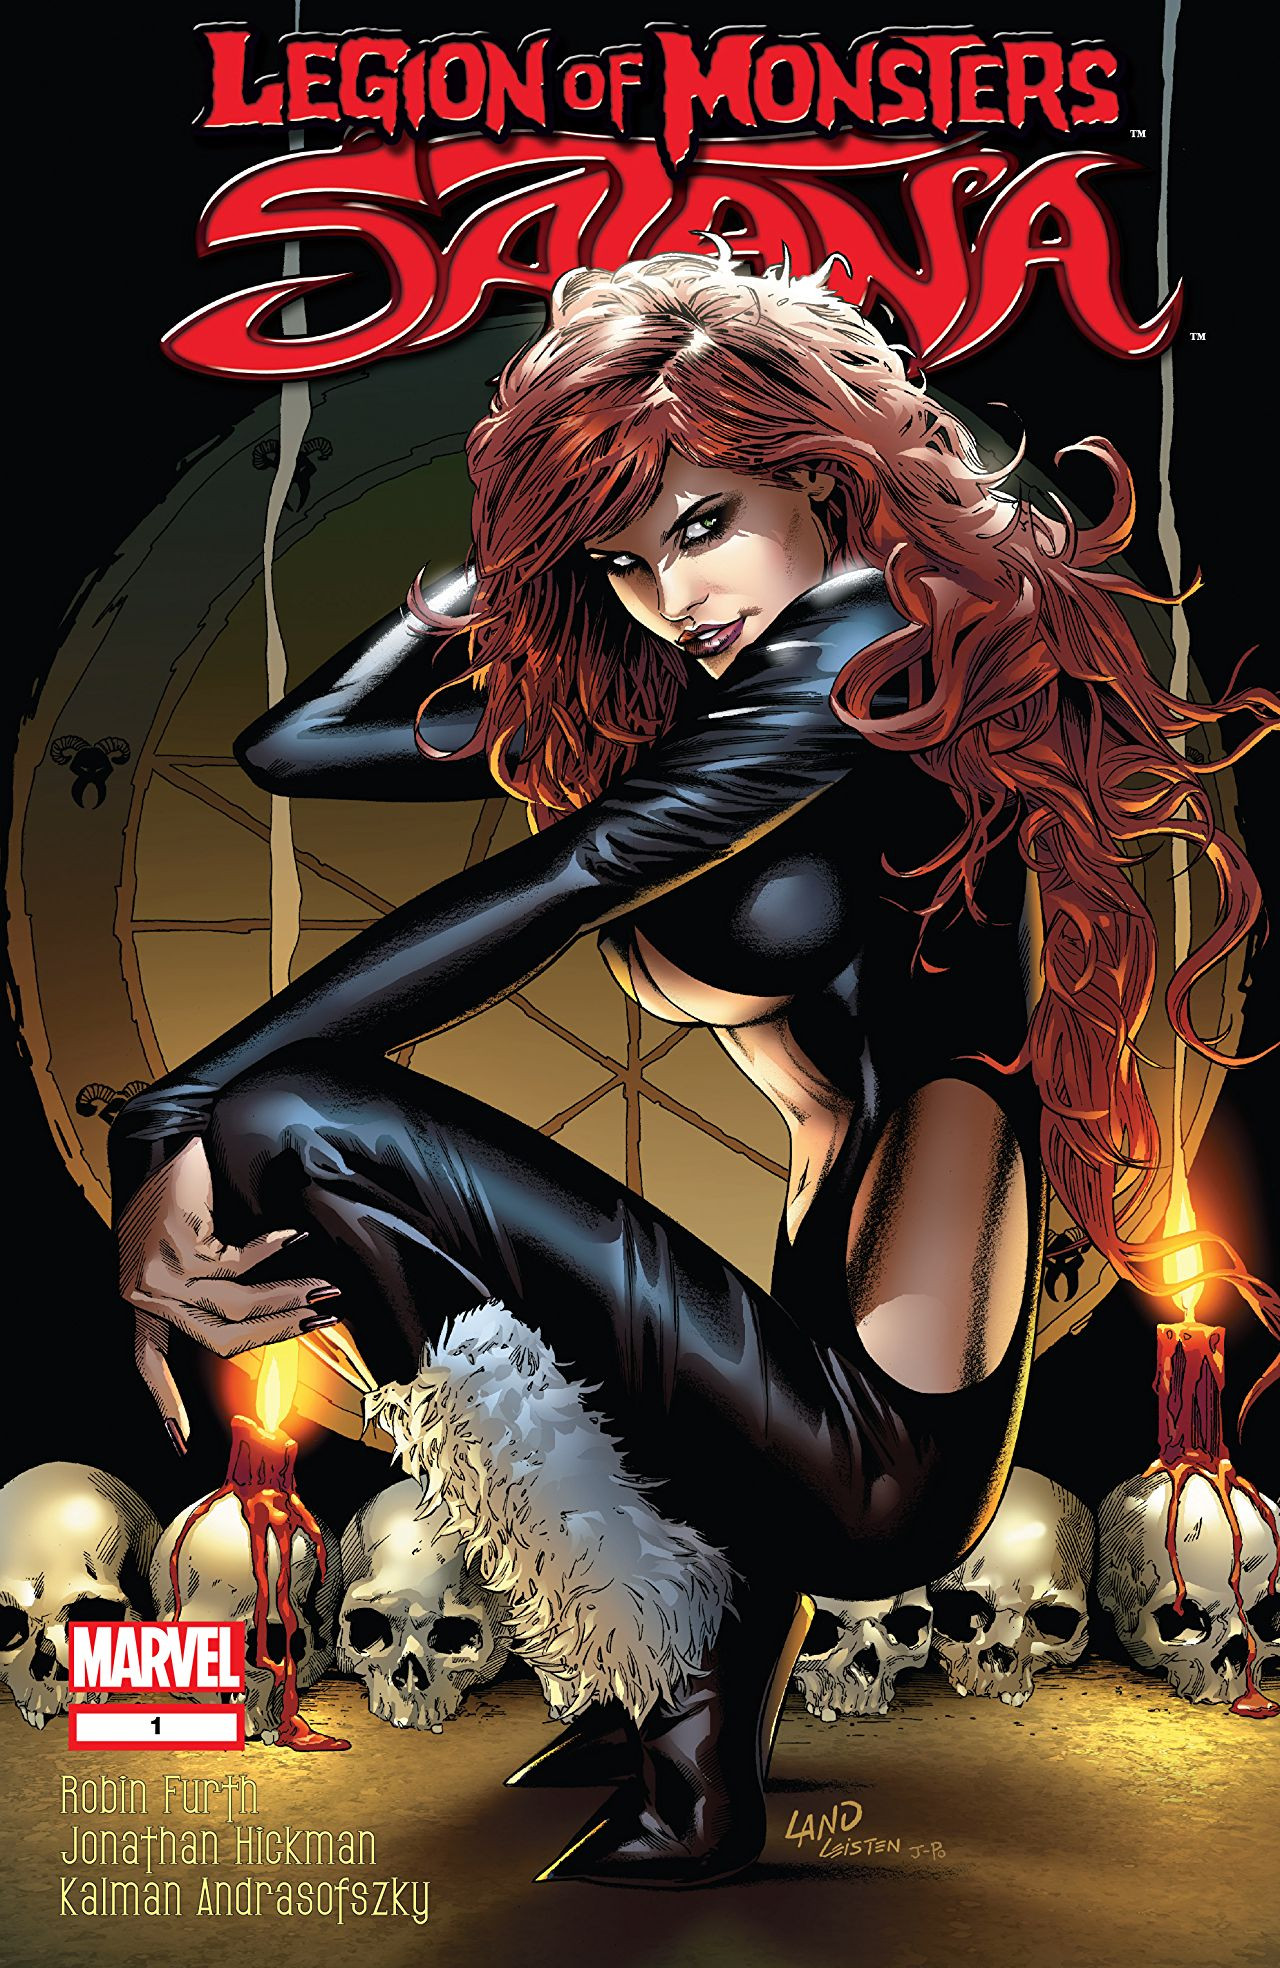 Legion of Monsters Satana Vol 1 1